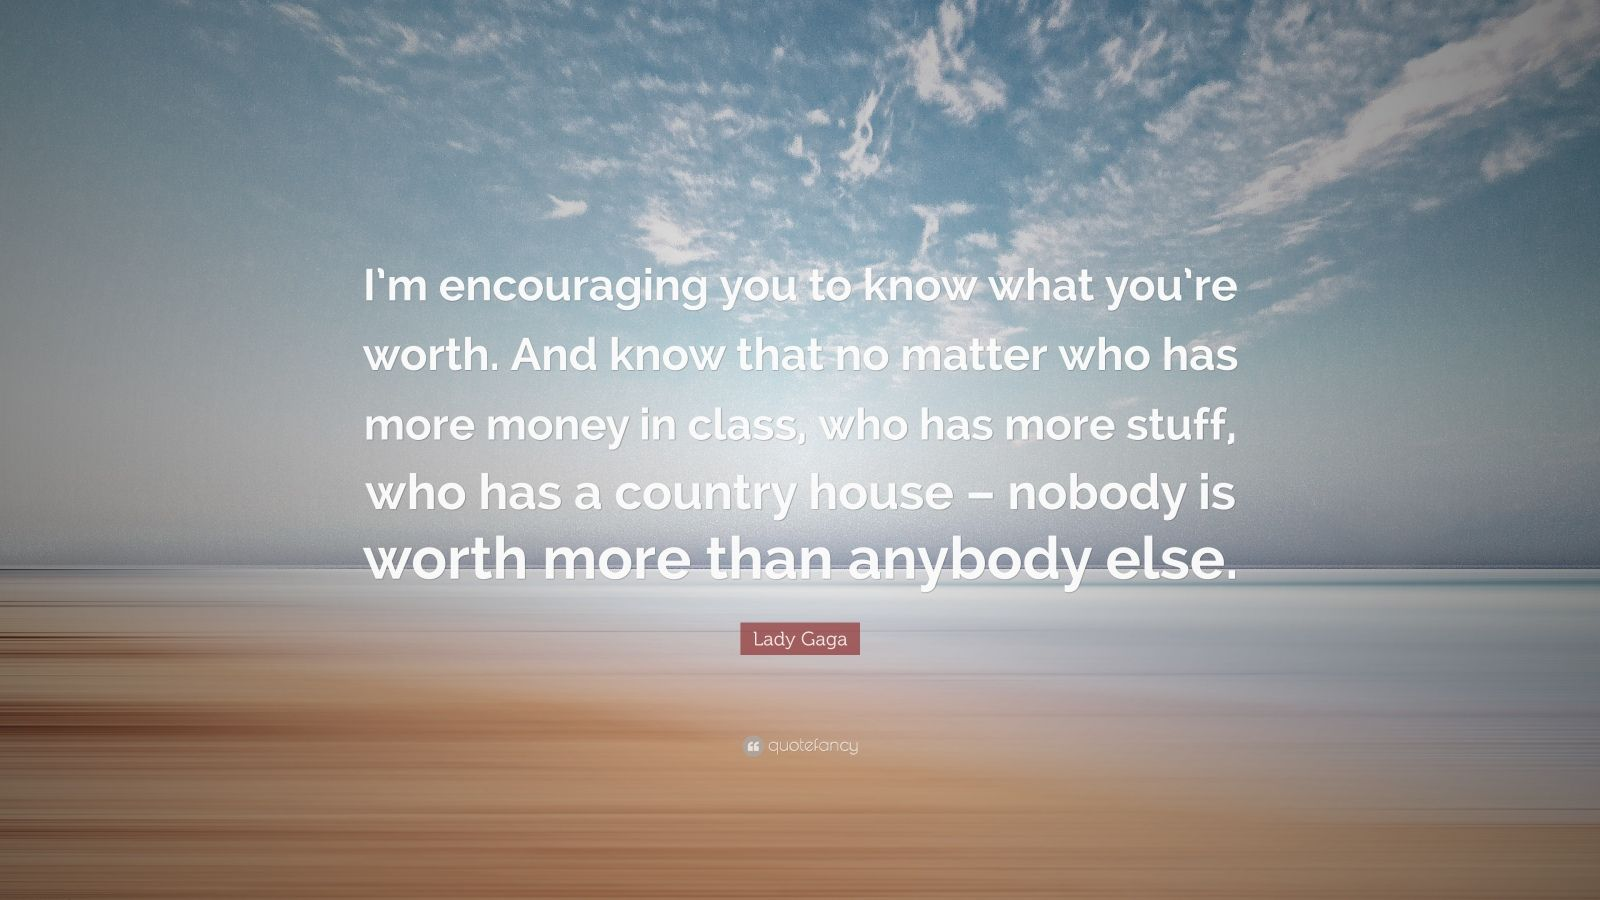 """Lady Gaga Quote: """"I'm encouraging you to know what you're worth. And know that no matter who has more money in class, who has more stuff, who has a country house – nobody is worth more than anybody else."""""""